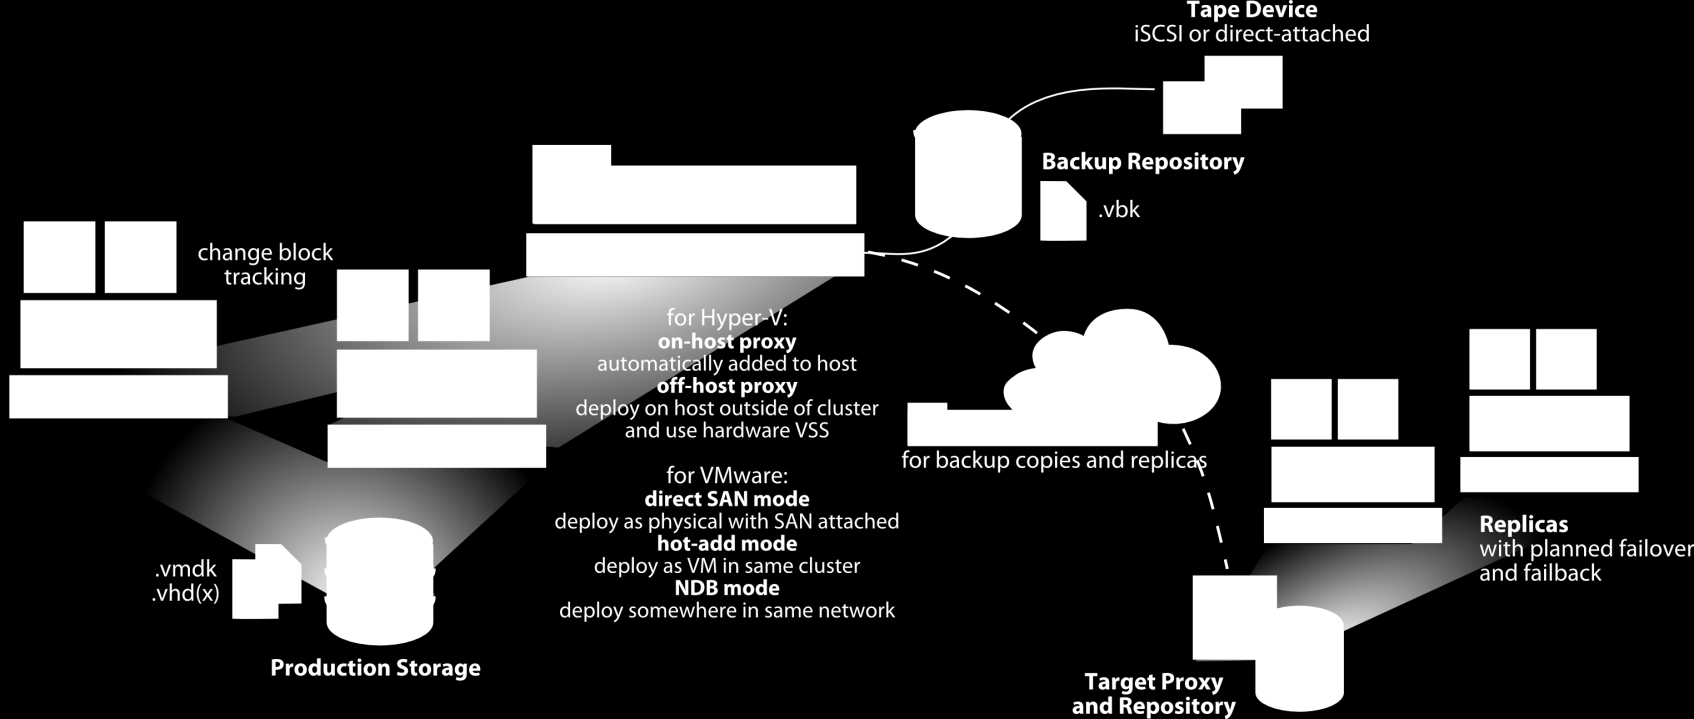 - Agentless backup and replication for VMware and